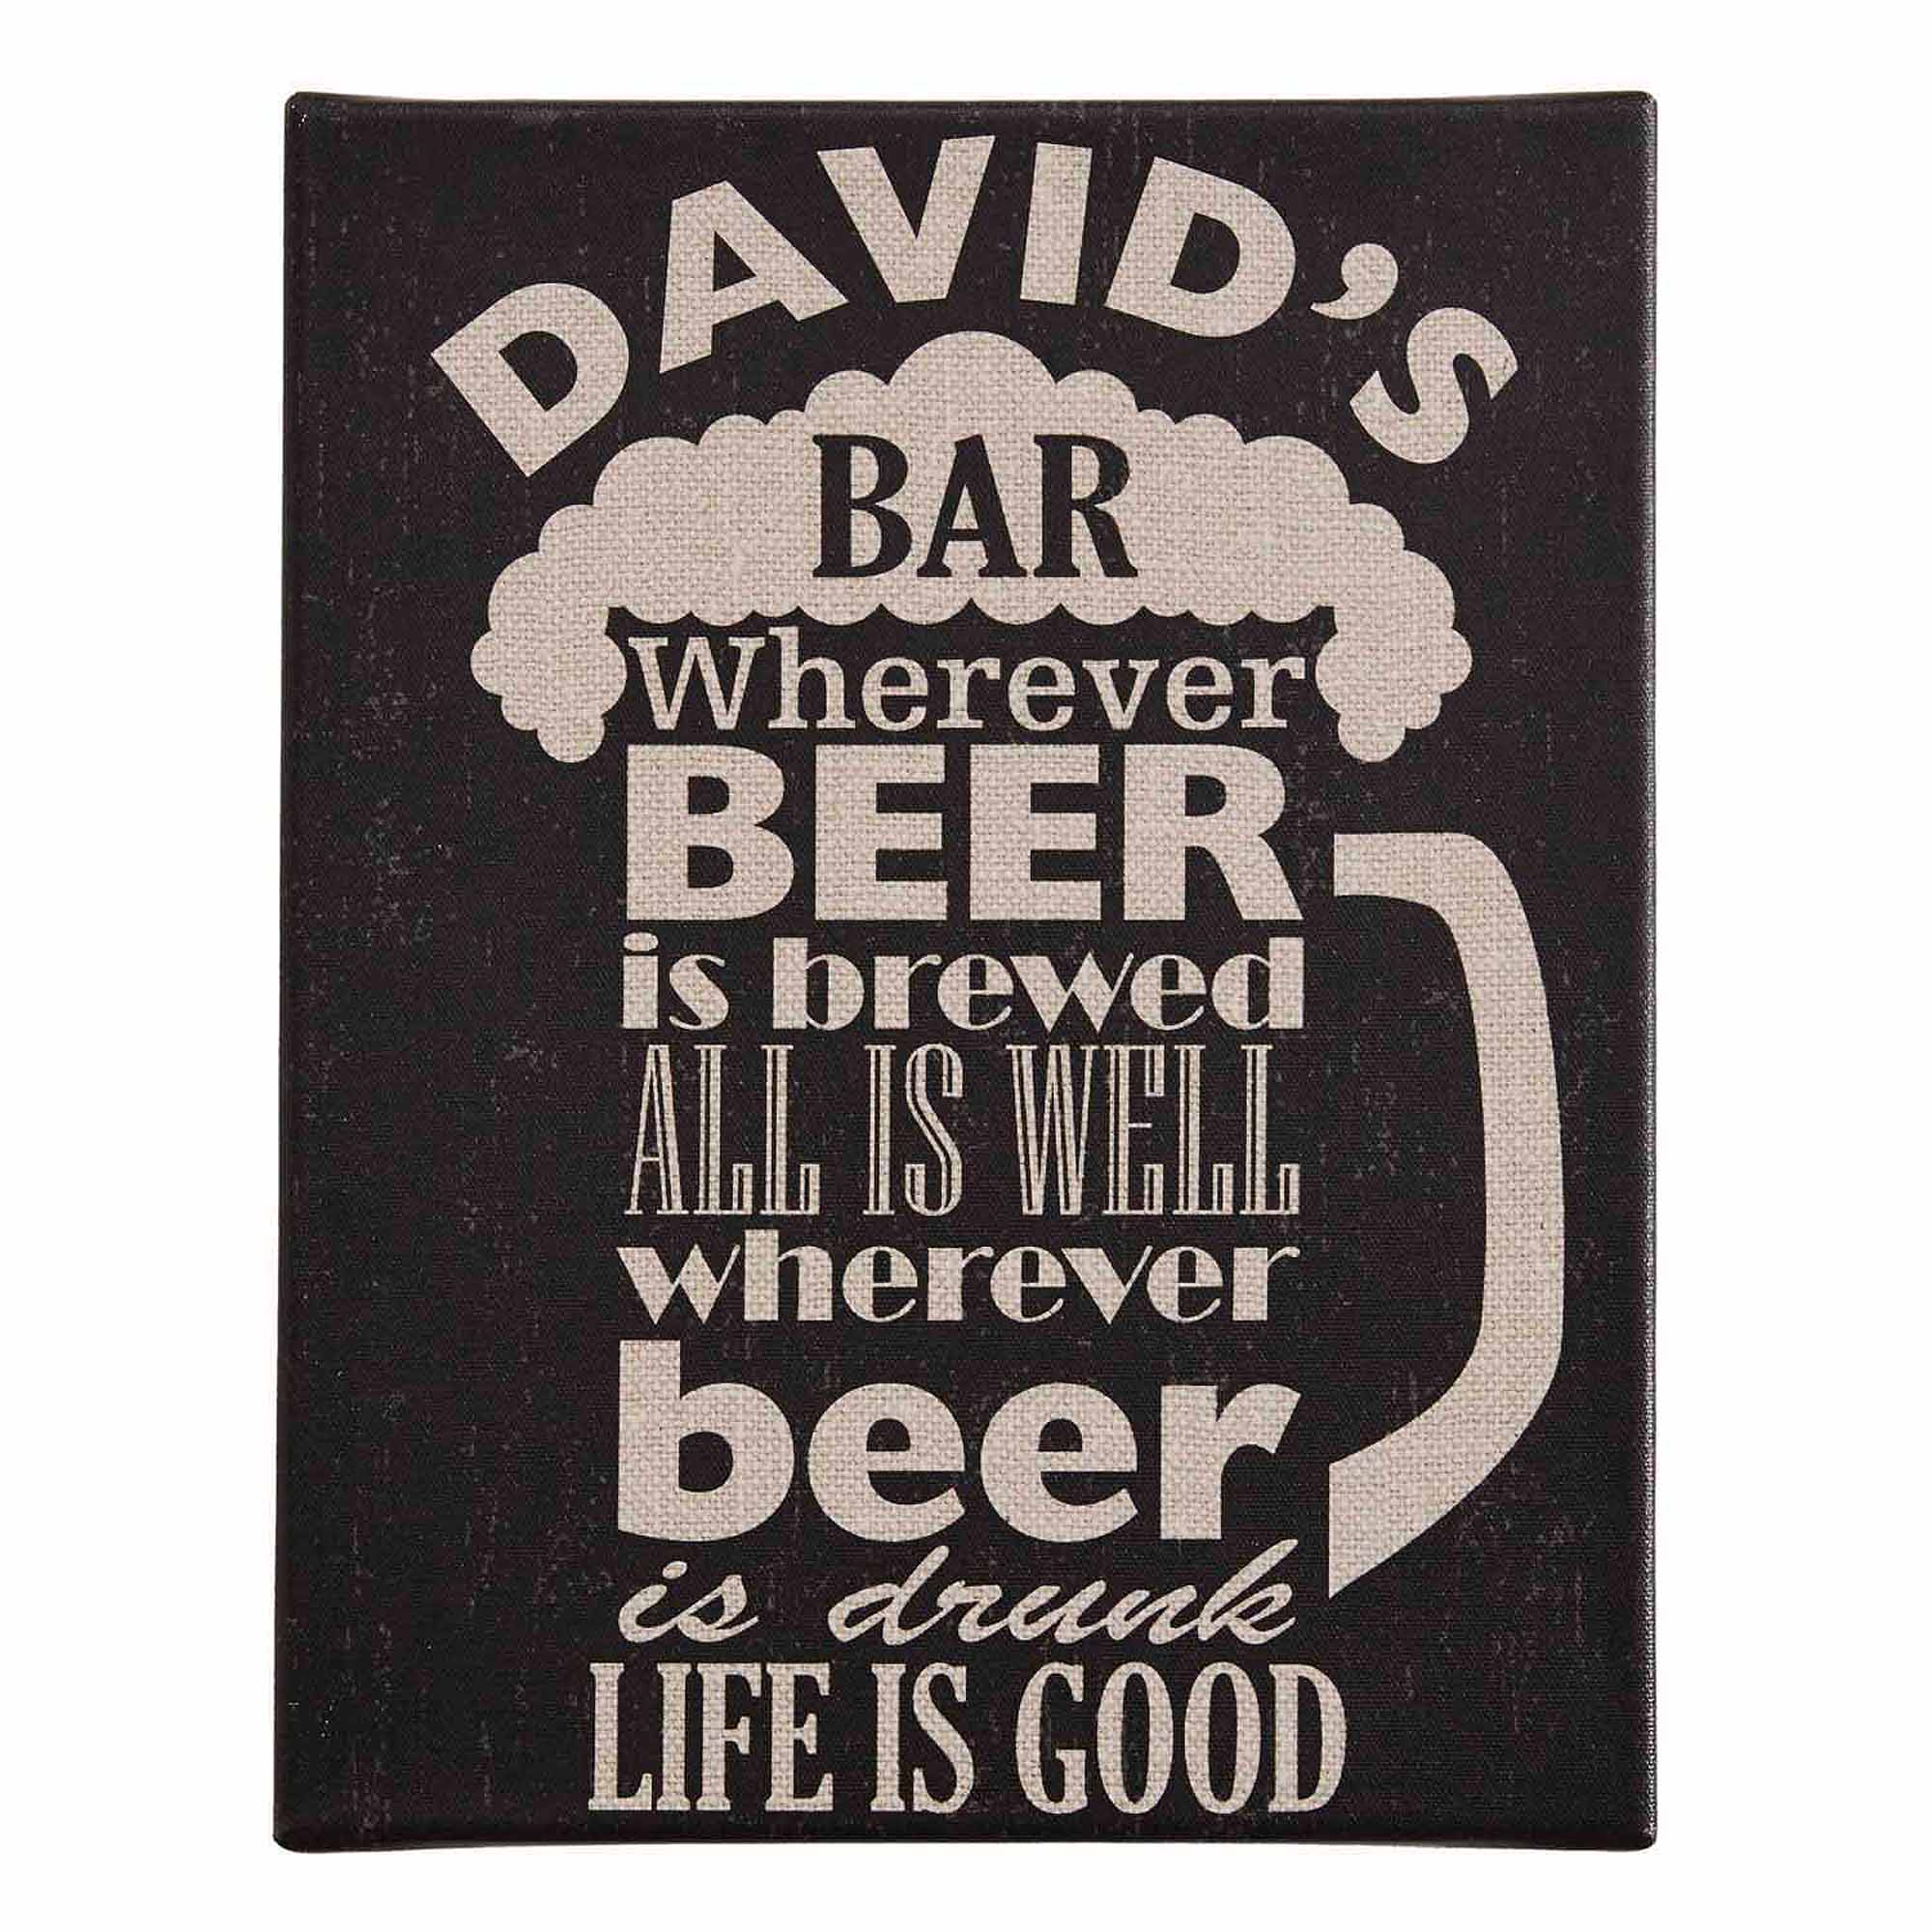 Personalized Beer-Shaped Text Canvas